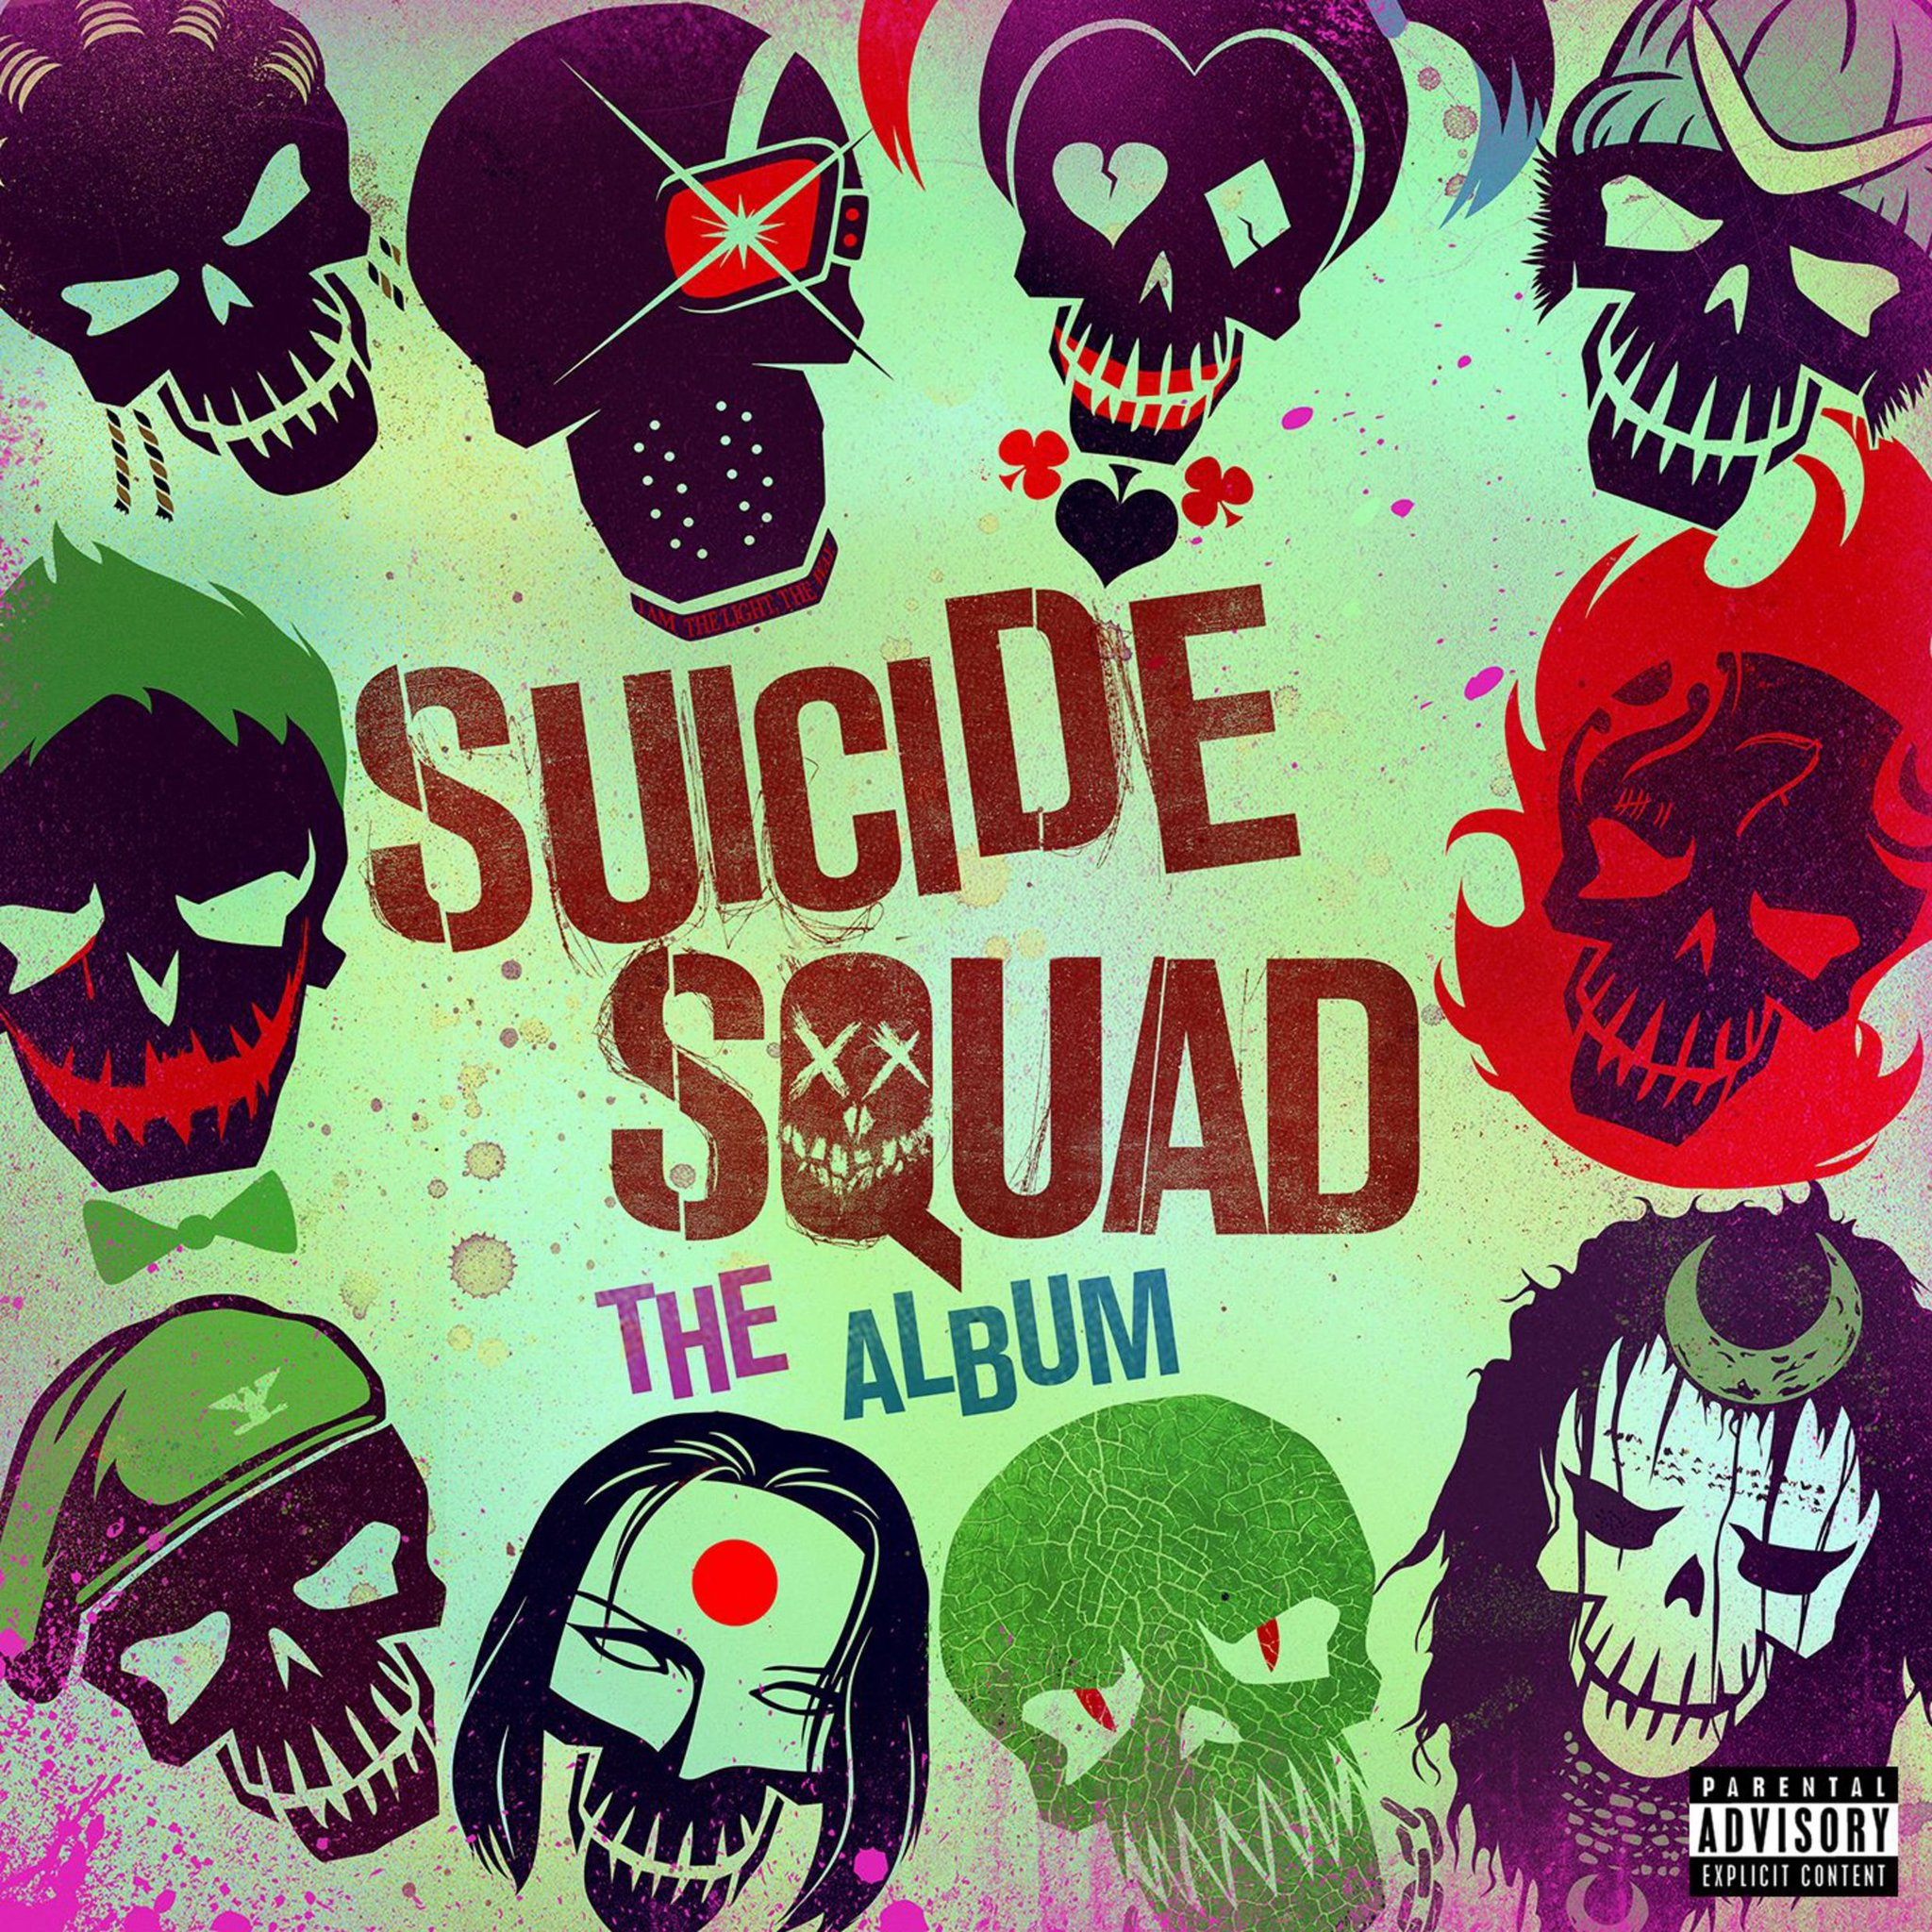 Suicide Squad - The Album